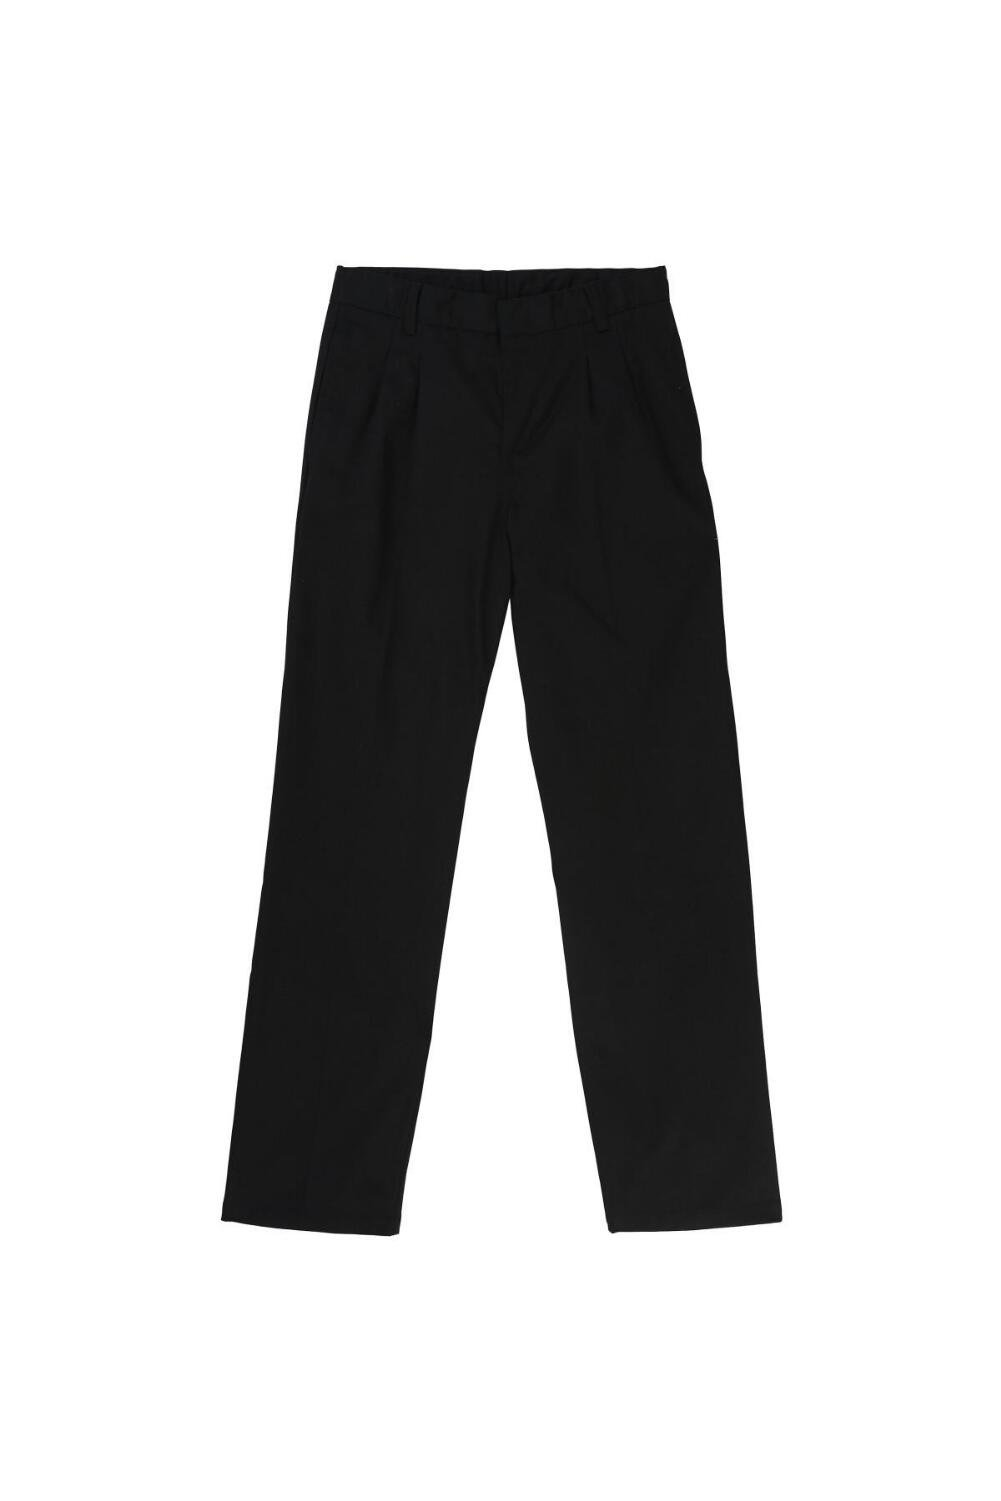 French Toast Big Boys' Relaxed Fit Pleated Pant, Black, 14